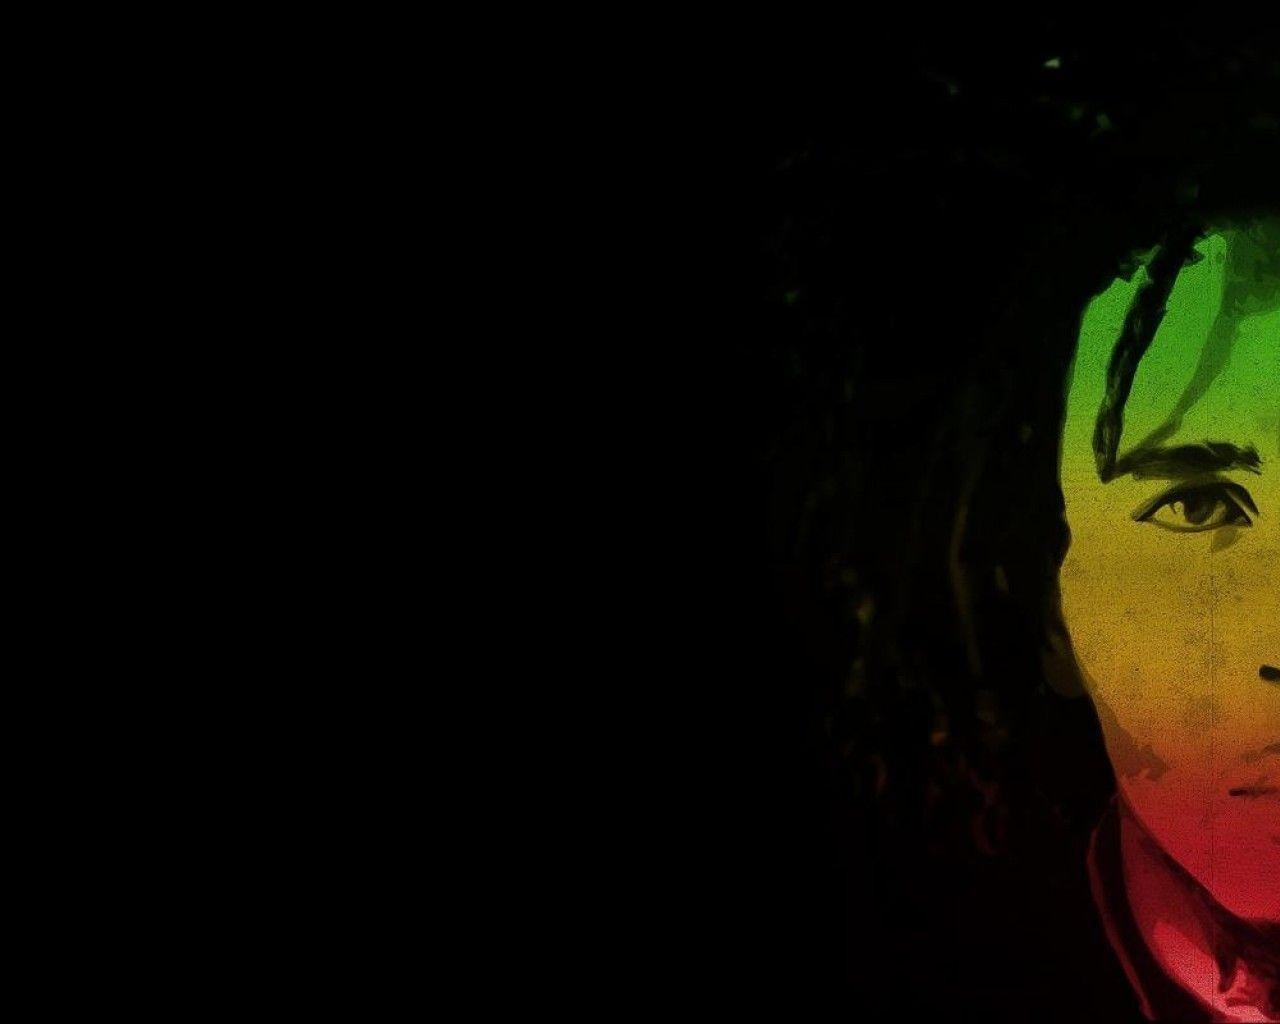 Music Jamaica Bob Marley Rasta Reggae Hd Wallpapers 1280x800PX